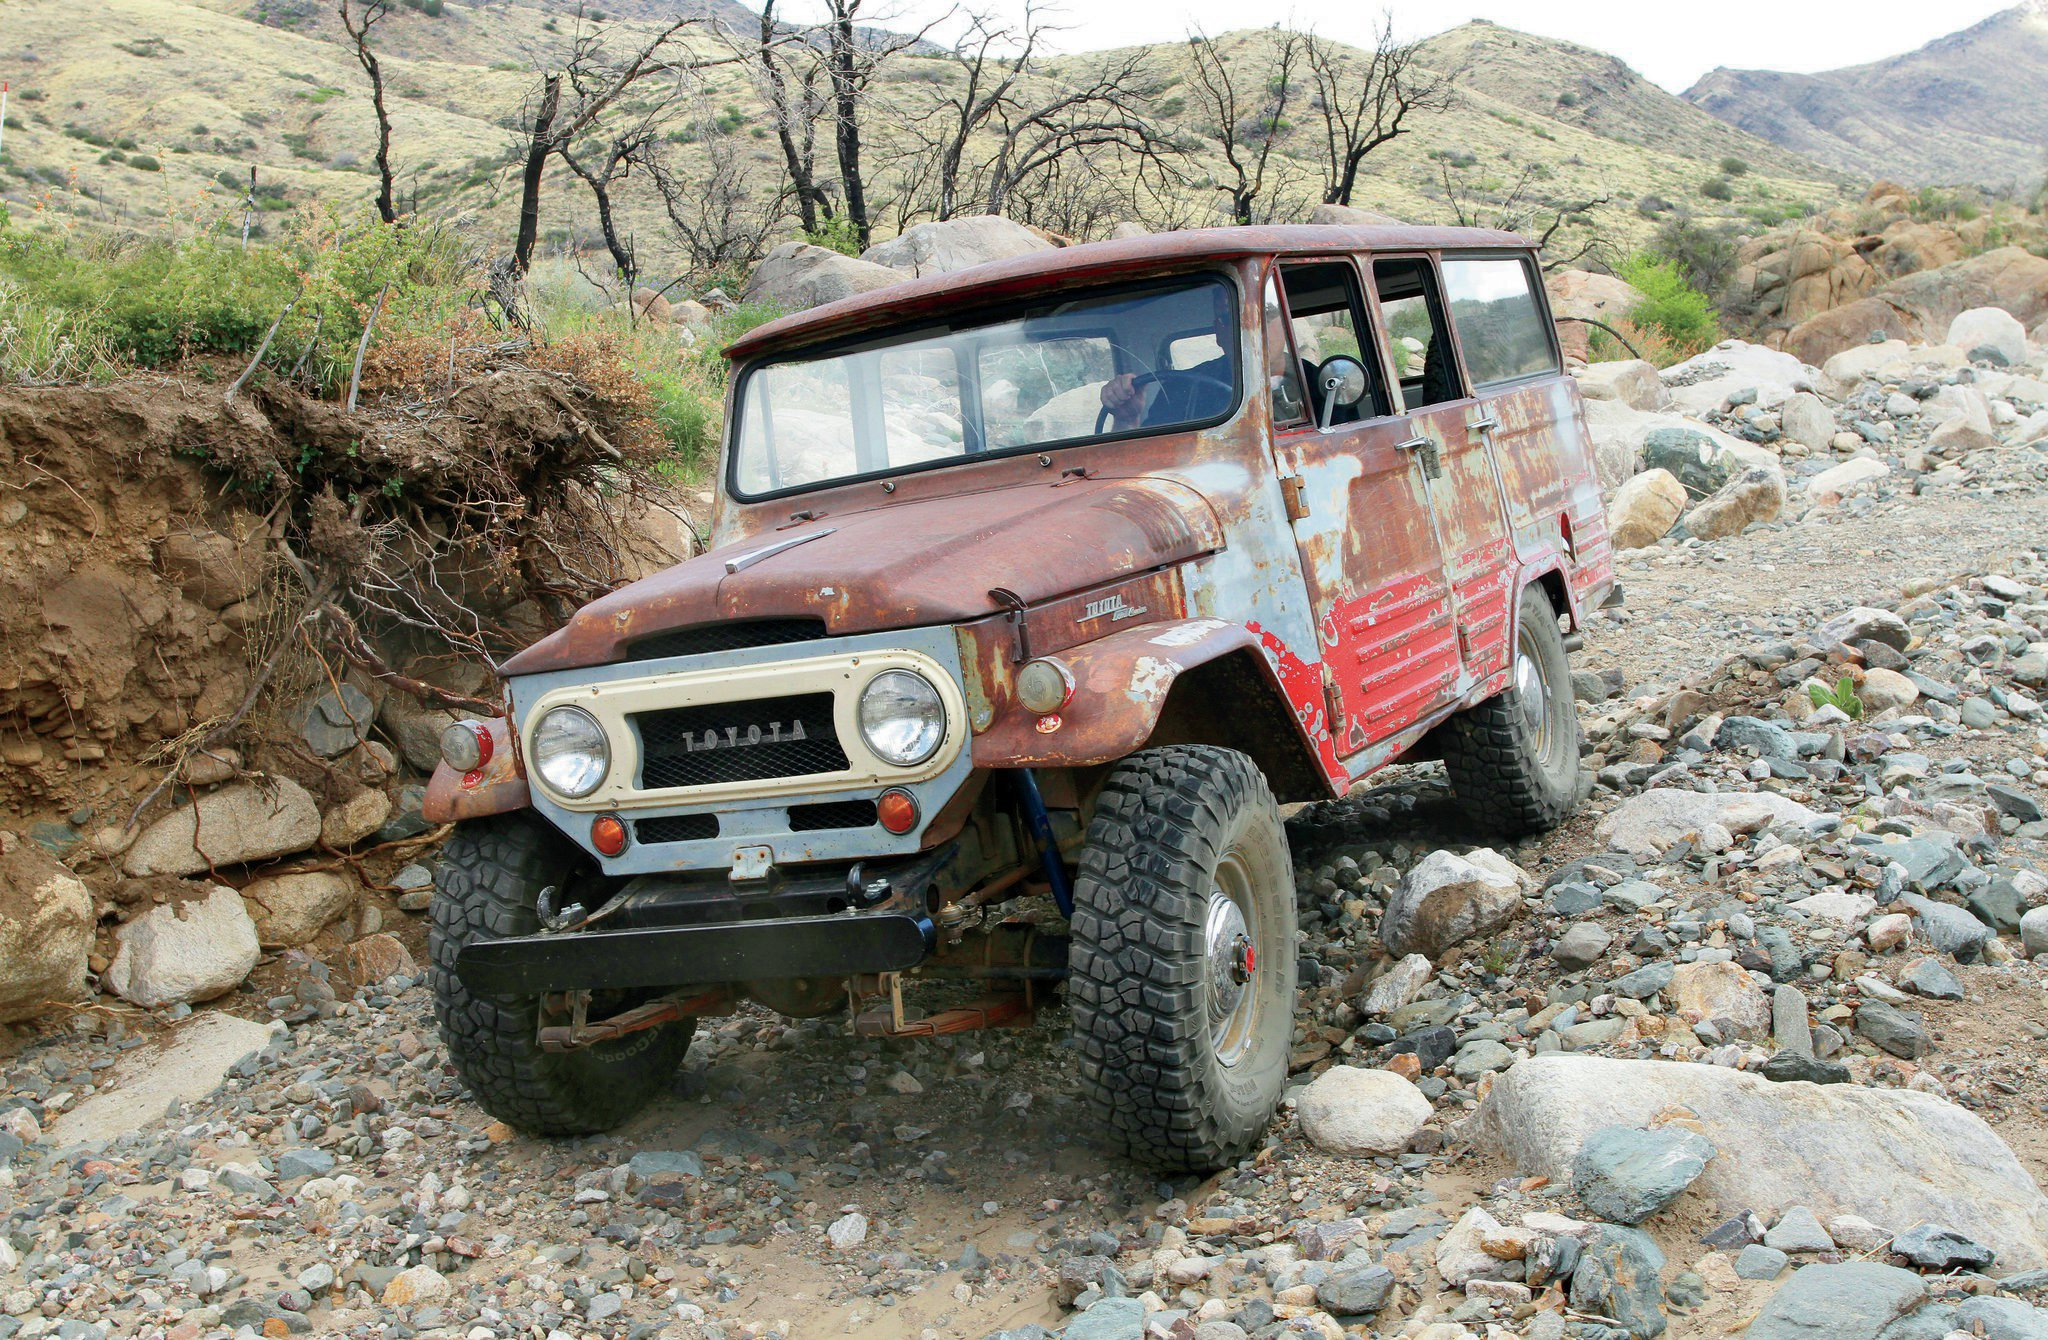 These wagons share the same front clip as the popular FJ40 series rigs, and the frame is the same one that was used on the short-wheelbase FJ45 pickups. Treads are fresh 33x10.5R15 BFGoodrich KM2 tires mounted to vintage Cruiser steel wheels. Rob Bonney supplied the rare early hubcaps at each wheel.